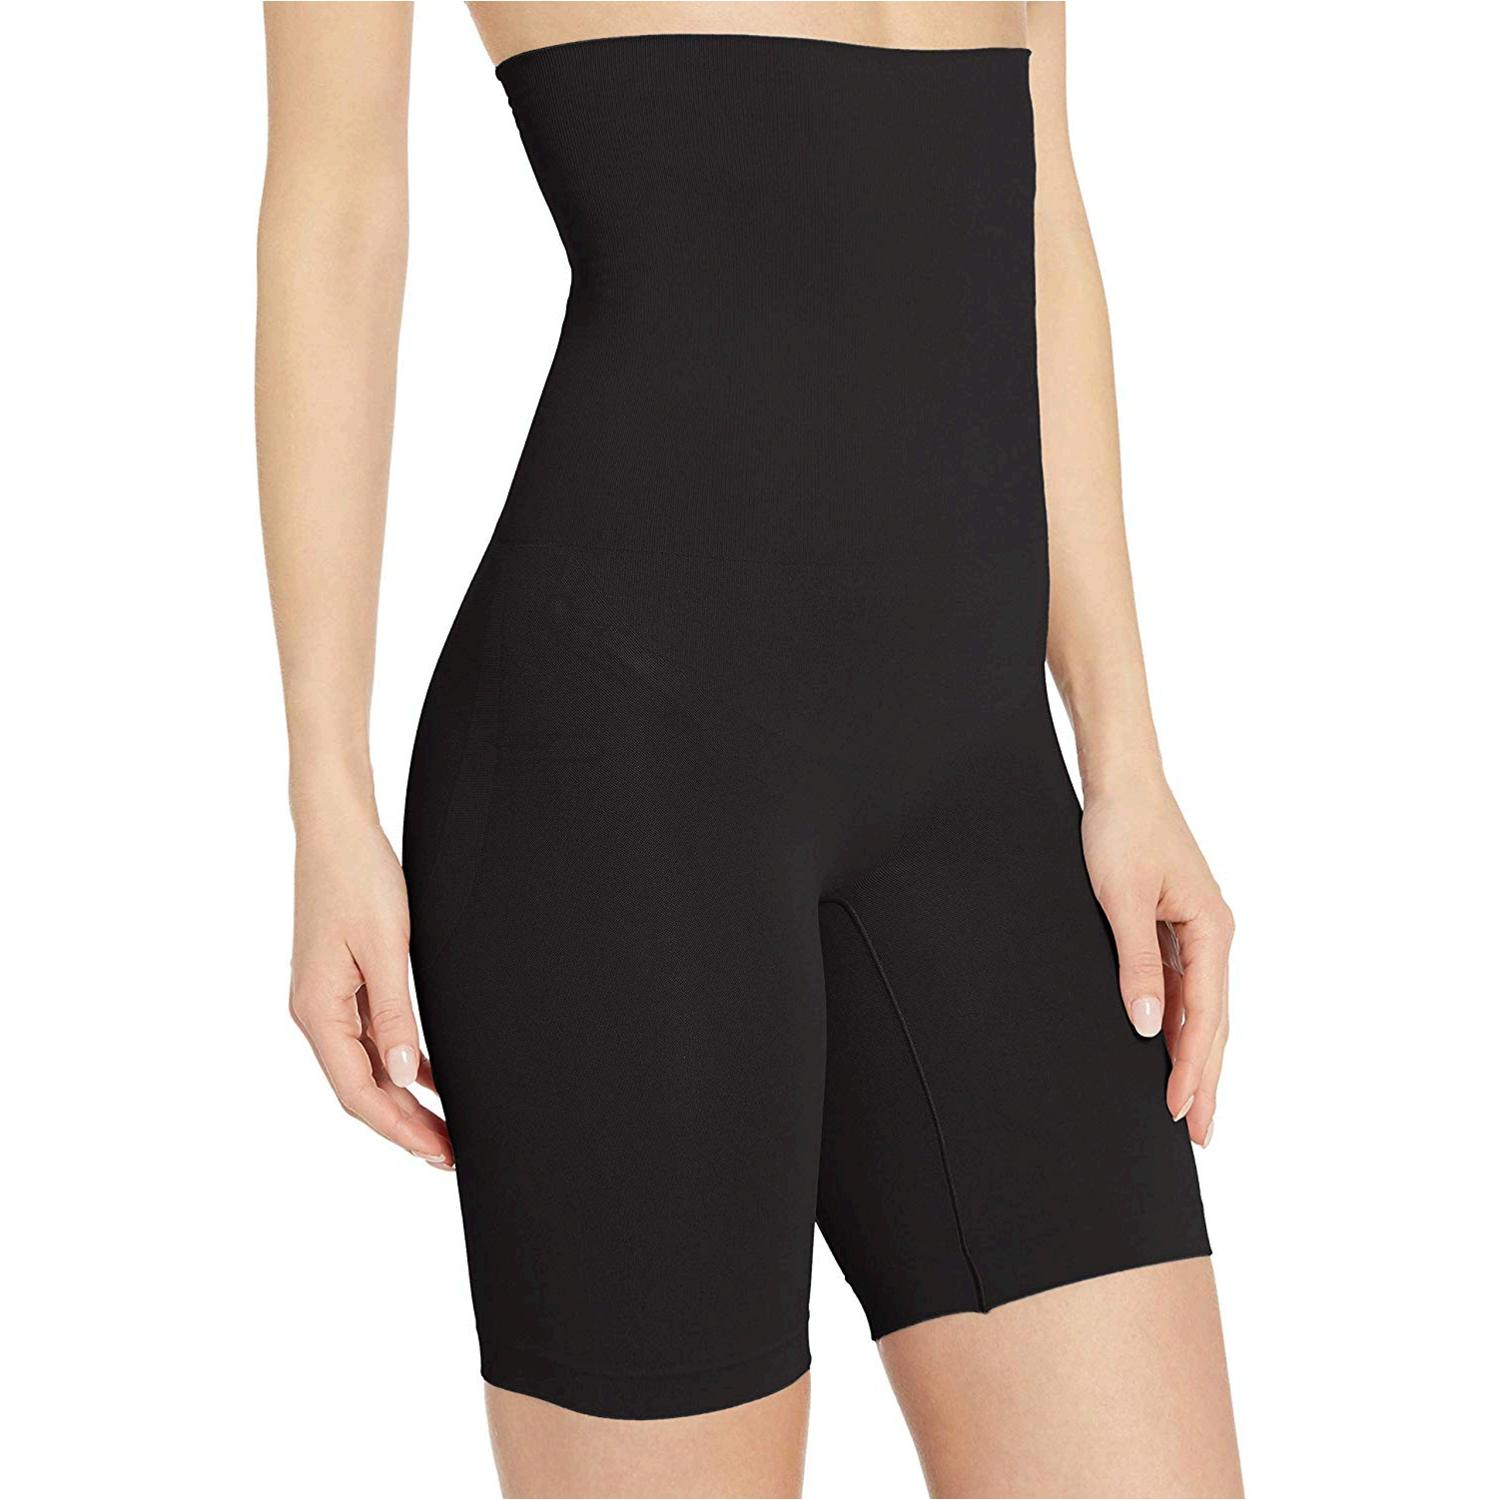 Spanx Synthetic Plus Size Firm-control High-waist Double